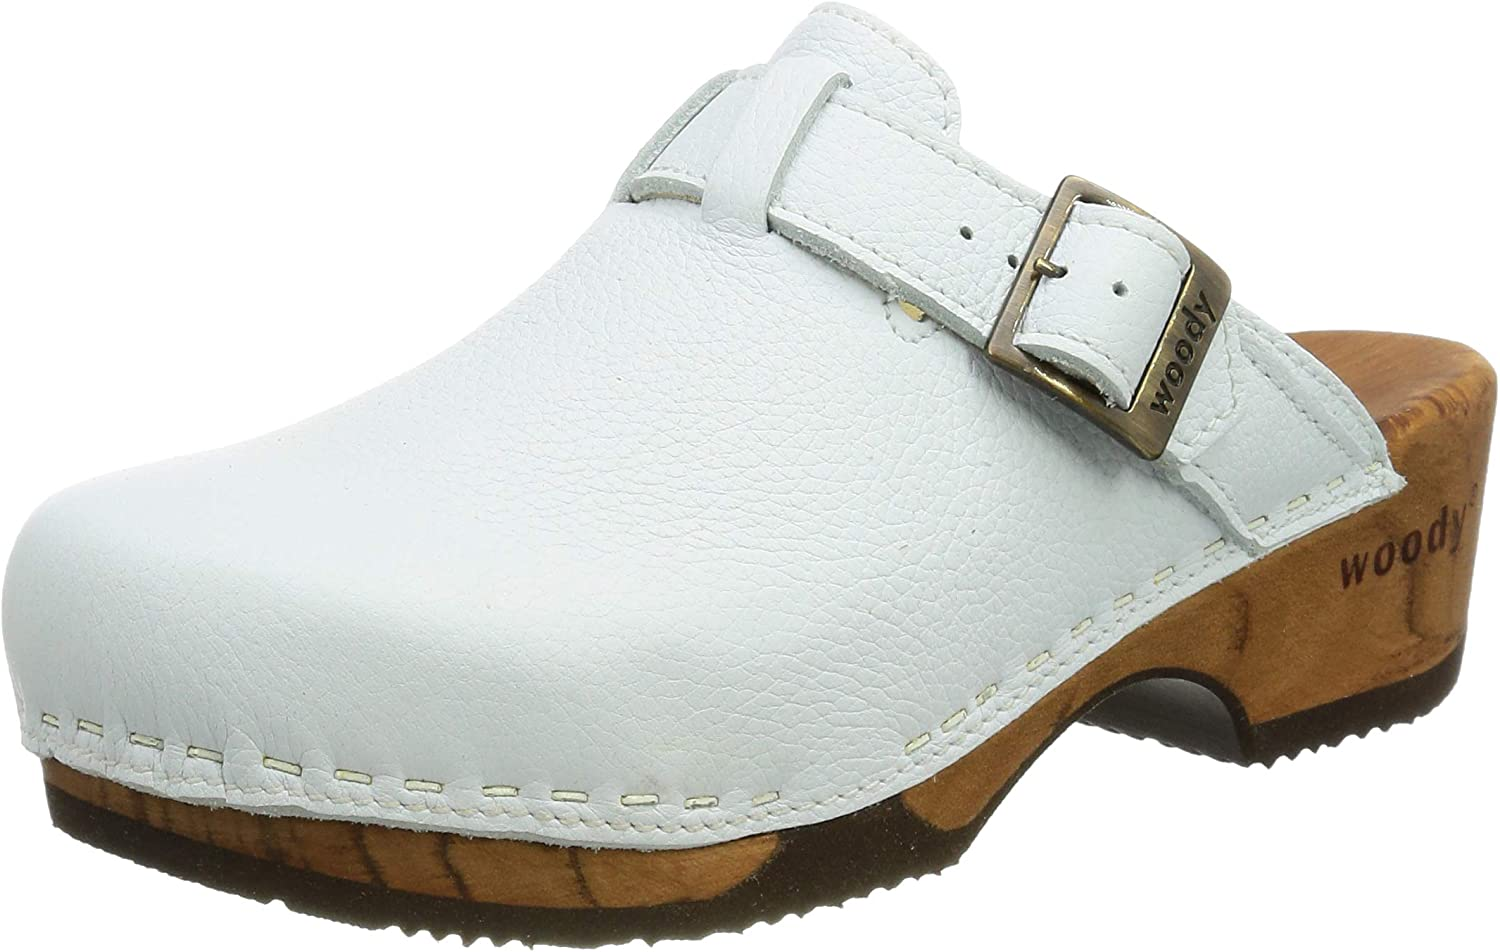 Woody Women's Wholesale Wooden Memphis Mall Shoes Clog